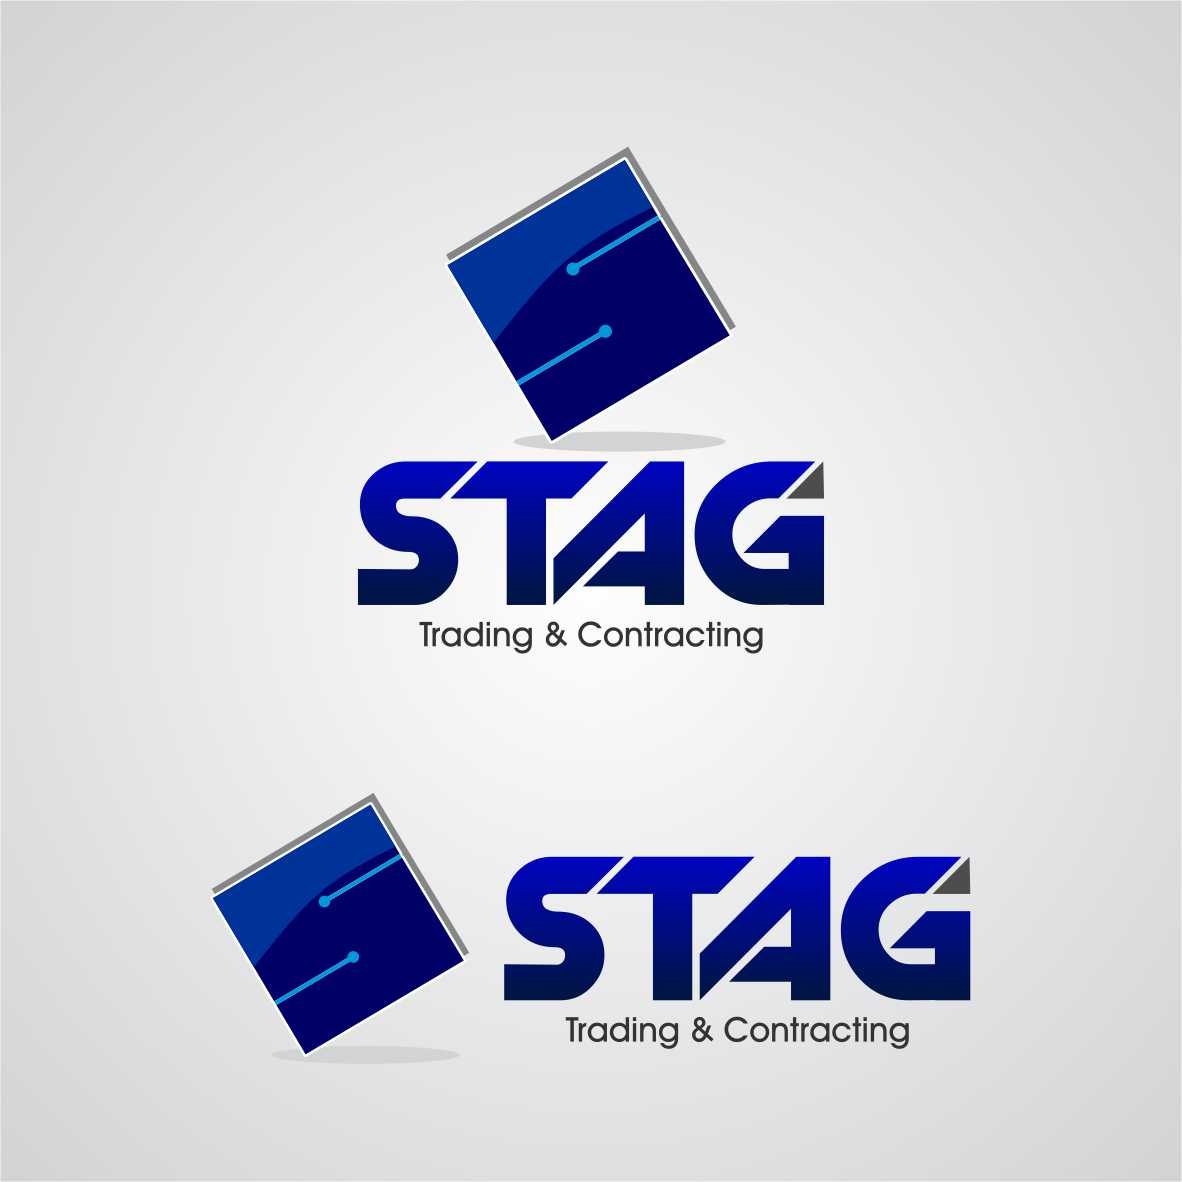 Logo Design by arteo_design - Entry No. 247 in the Logo Design Contest Captivating Logo Design for STAG Trading & Contracting.